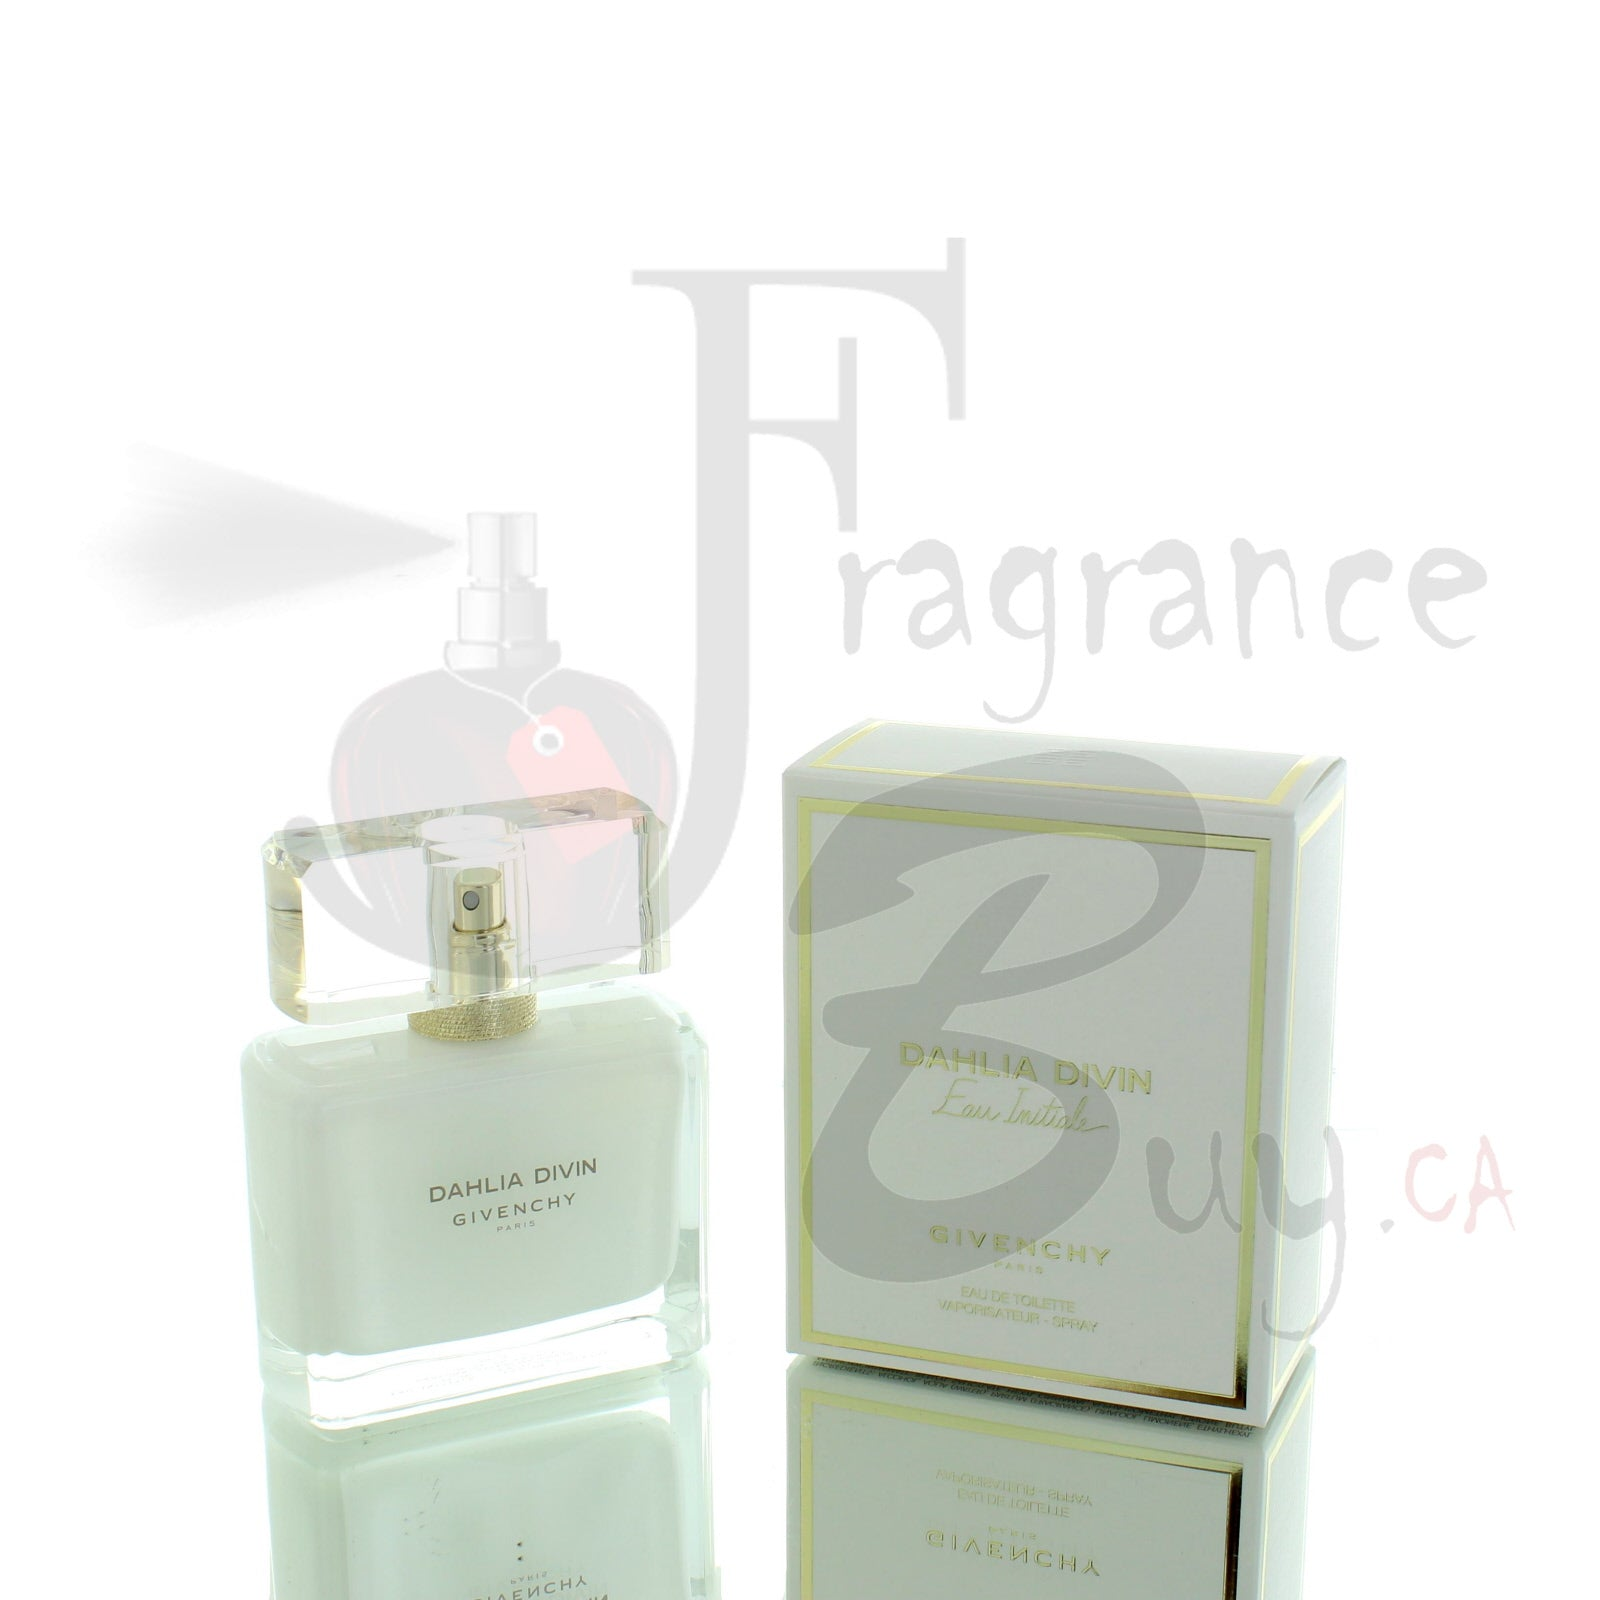 Givenchy Dahlia Divin Eau Initiale For Woman